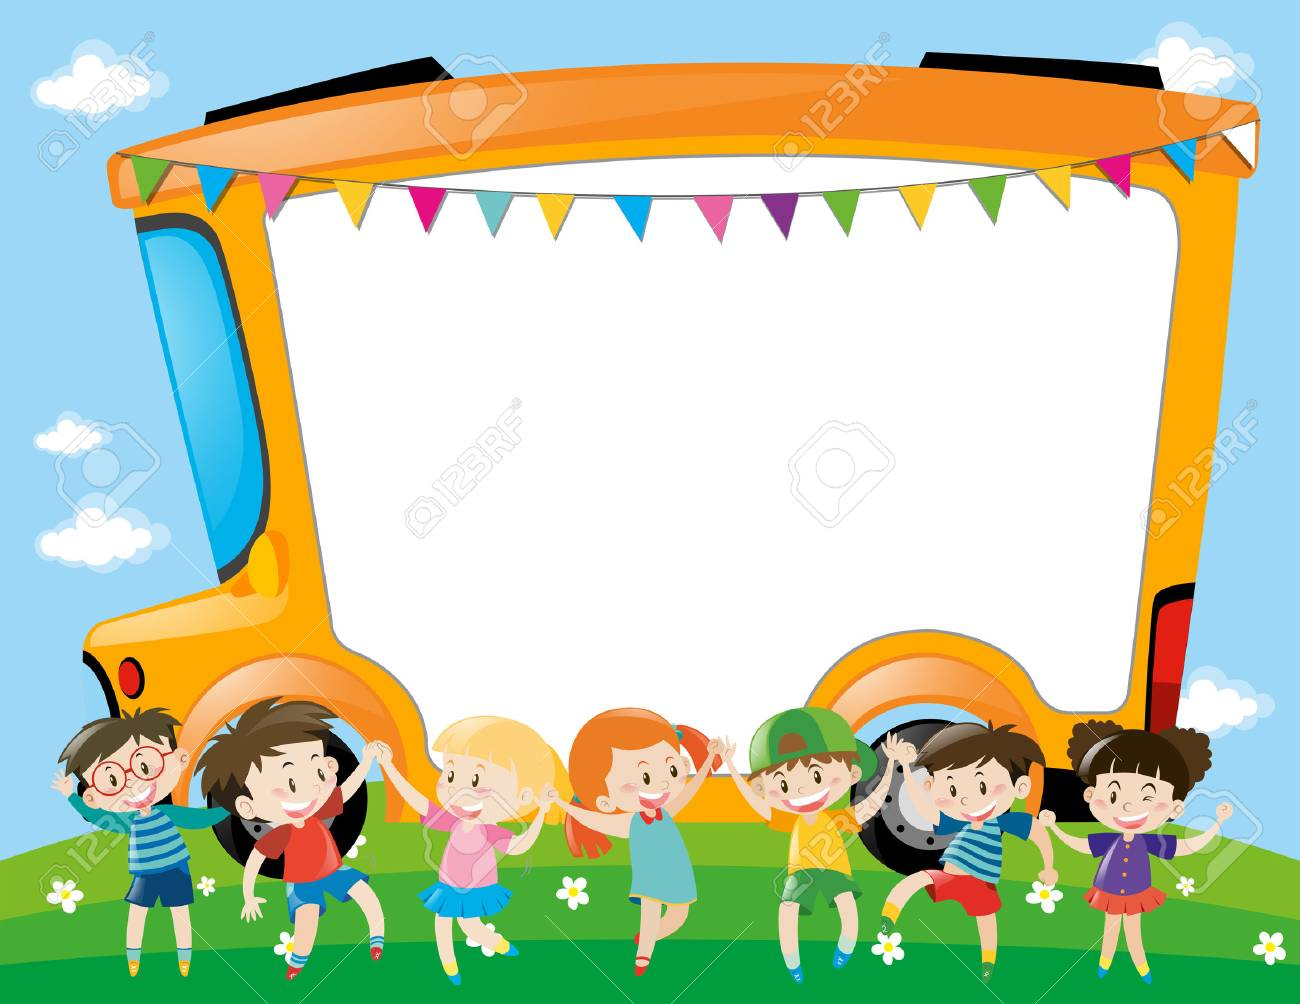 border template with children in the park illustration royalty free